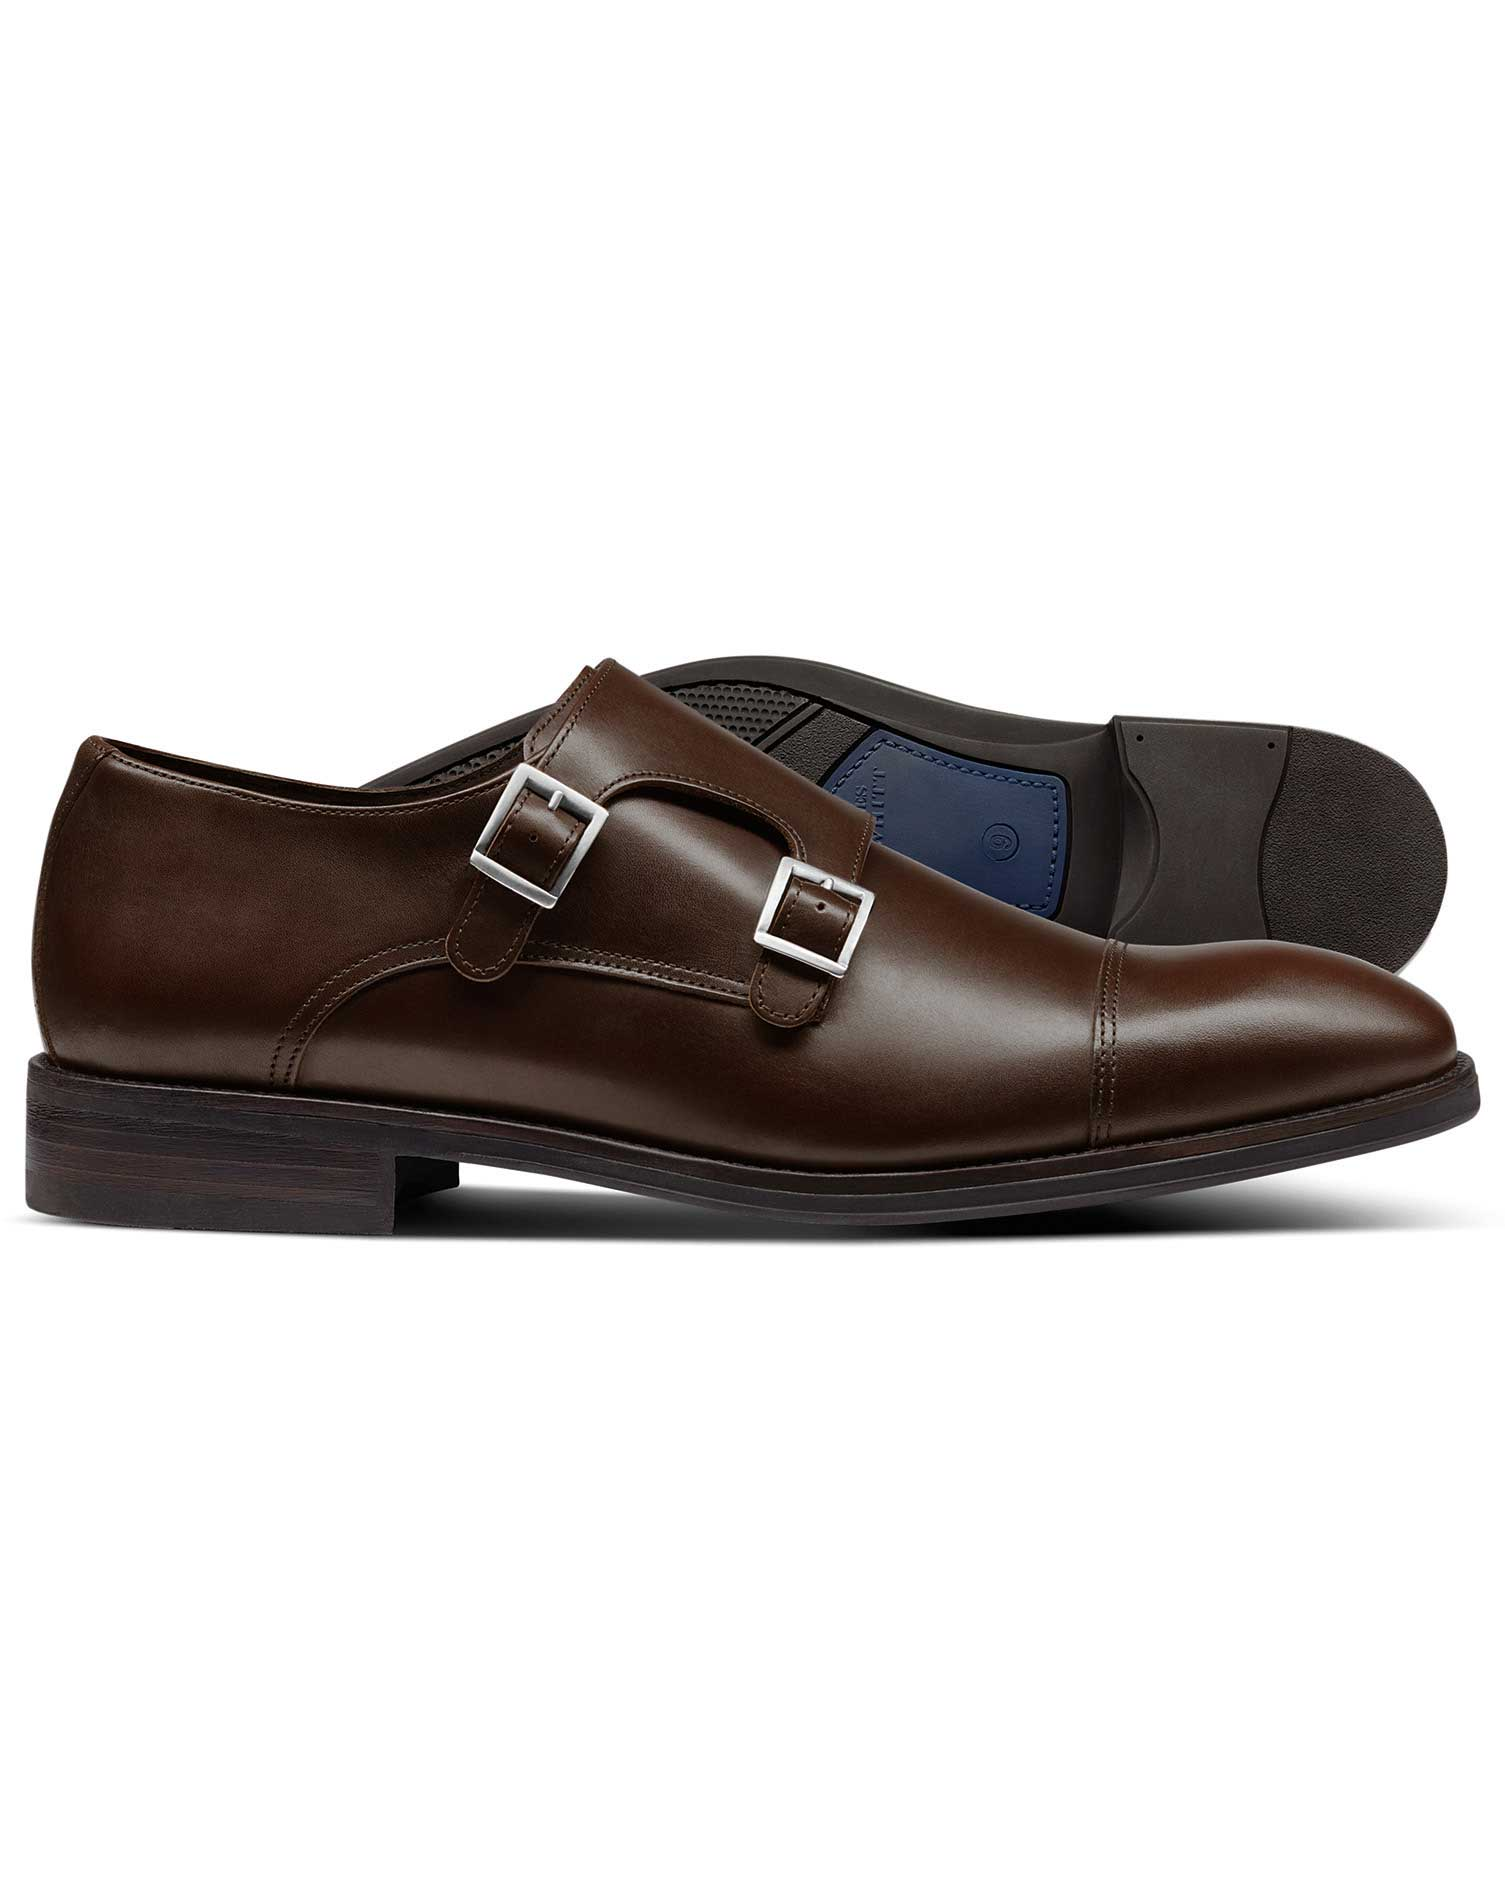 Brown Silverwell Toe Cap Monk Shoes Size 10.5 R by Charles Tyrwhitt